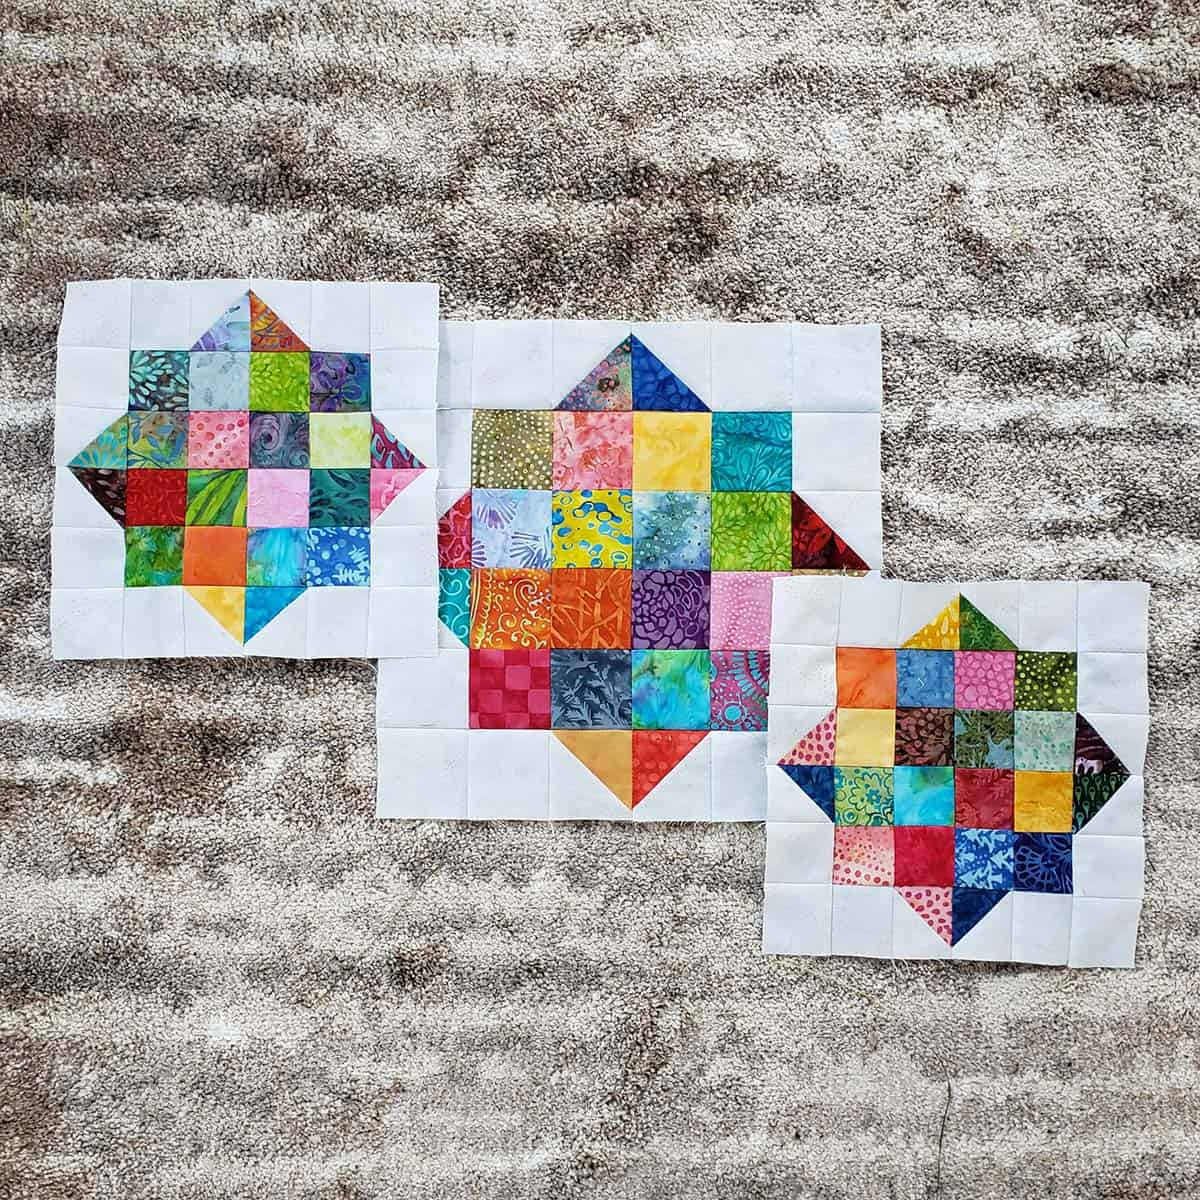 2 sizes of quilt blocks